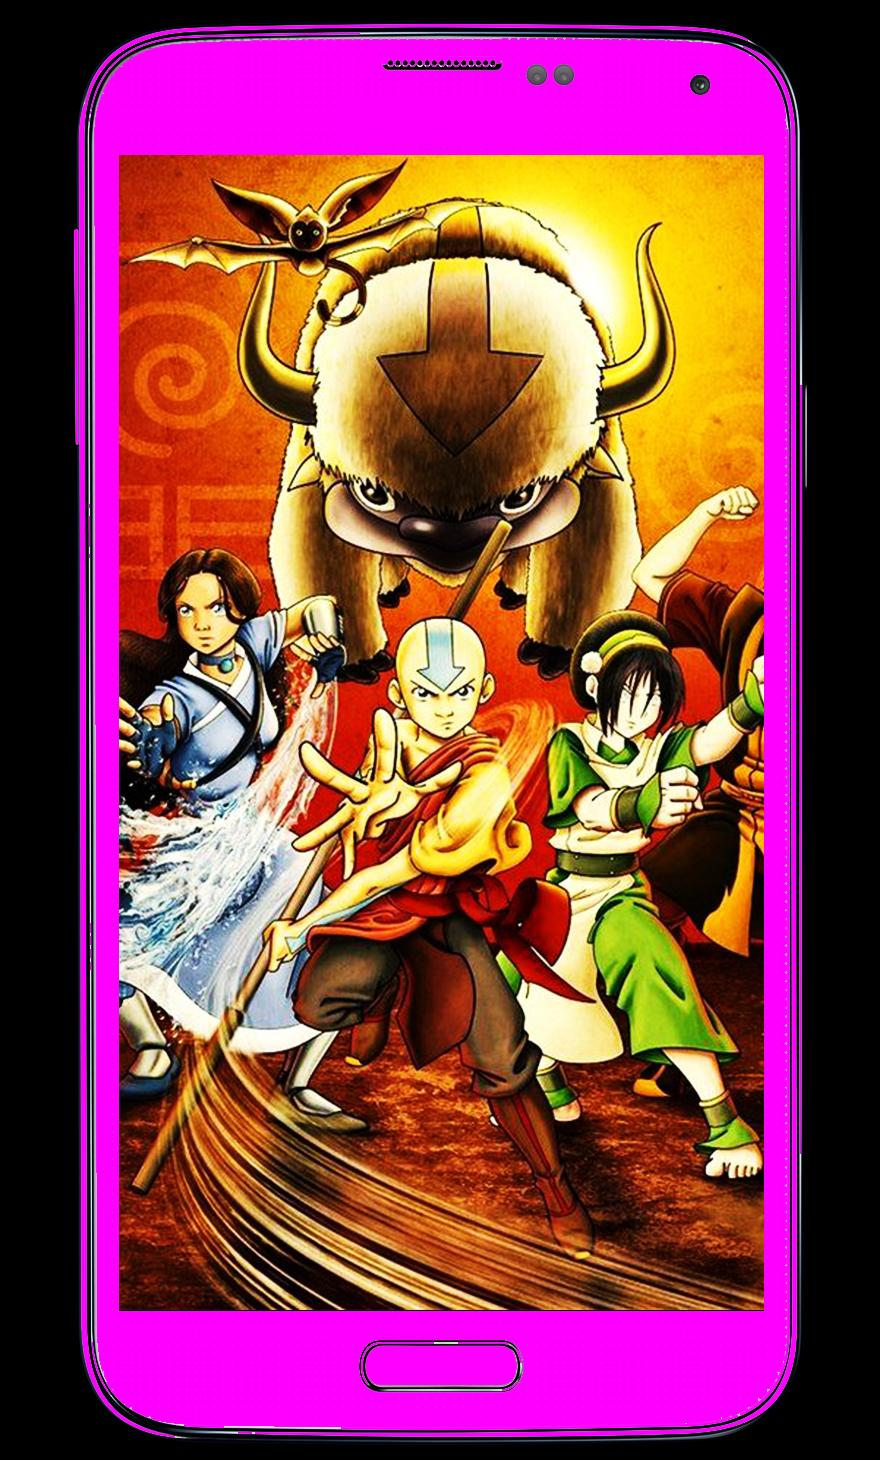 Avatar The Last Airbender Hd Wallpaper For Android Apk Download